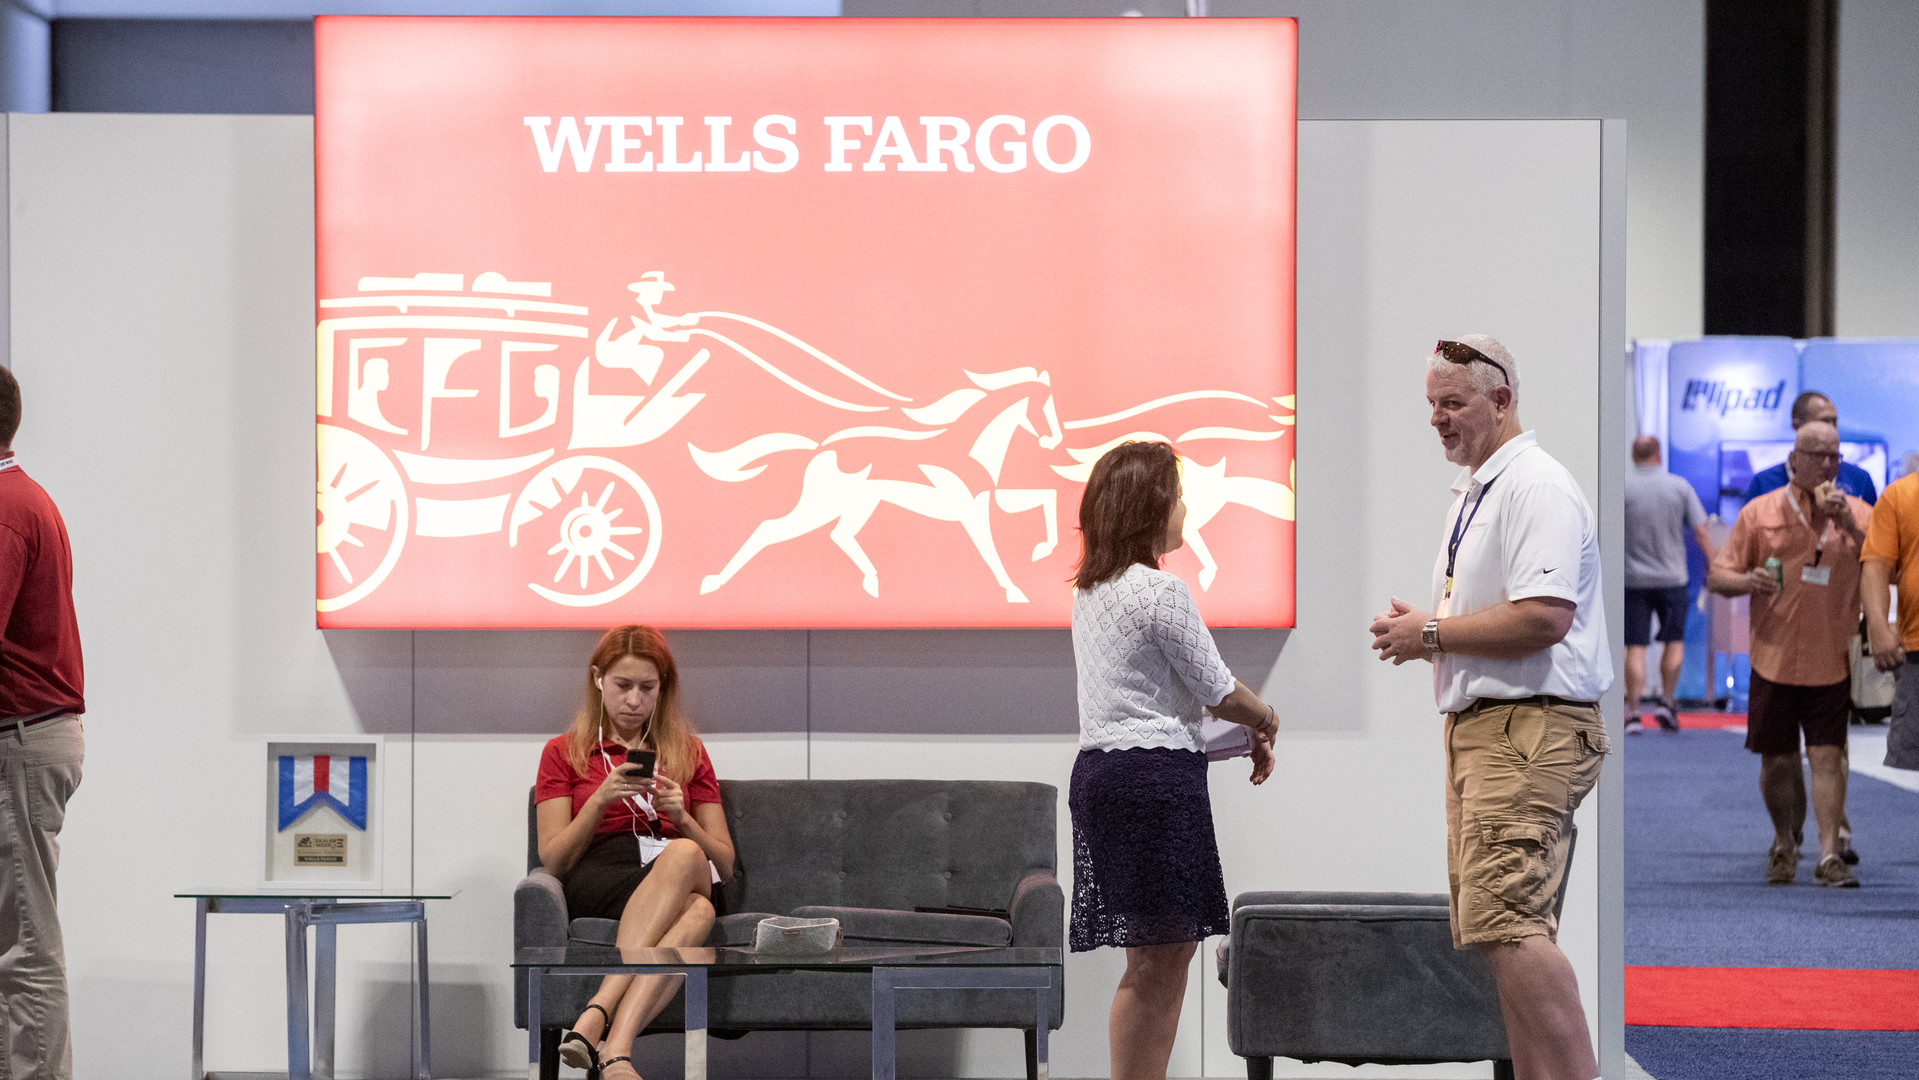 Wells Fargo exhibiting at Dealer Week 2019.